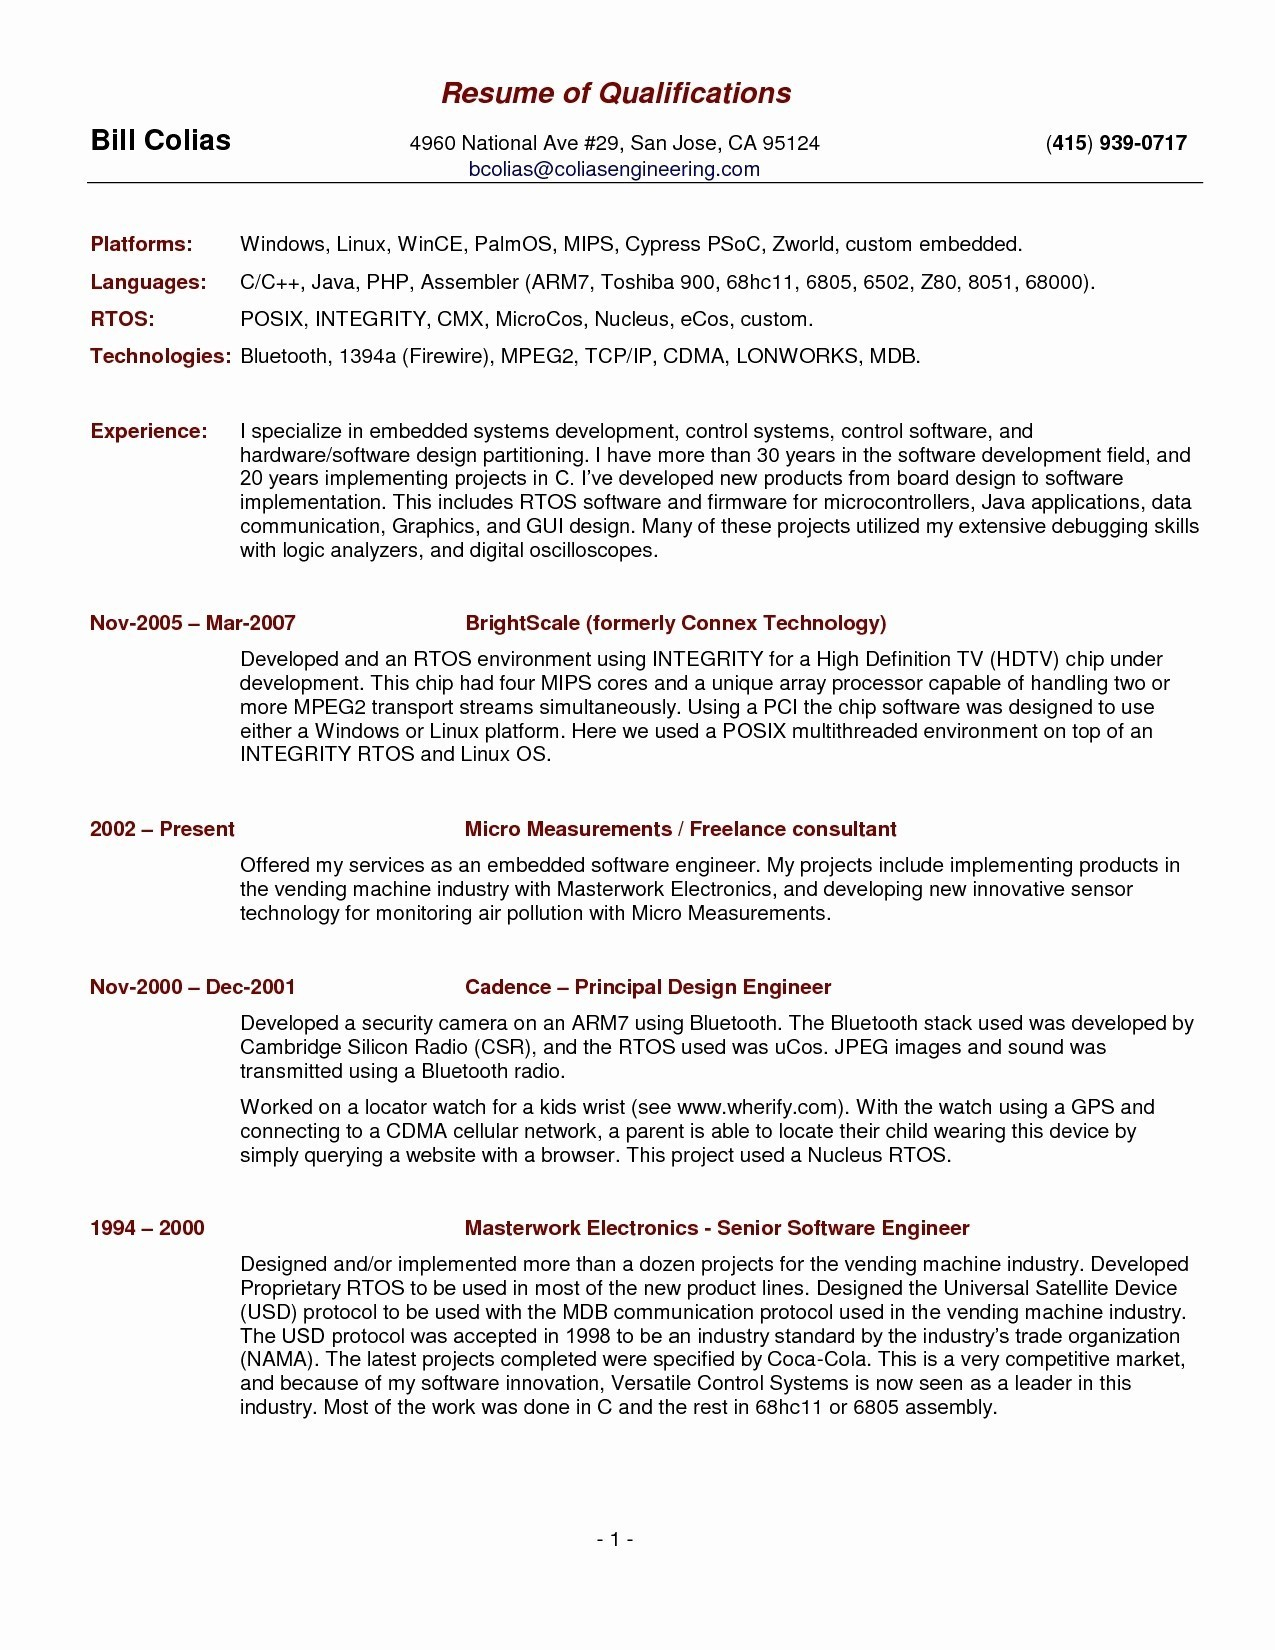 Graphic Design Cover Letter Template - android Developer Resume Luxury Graphic Design Cover Letter New